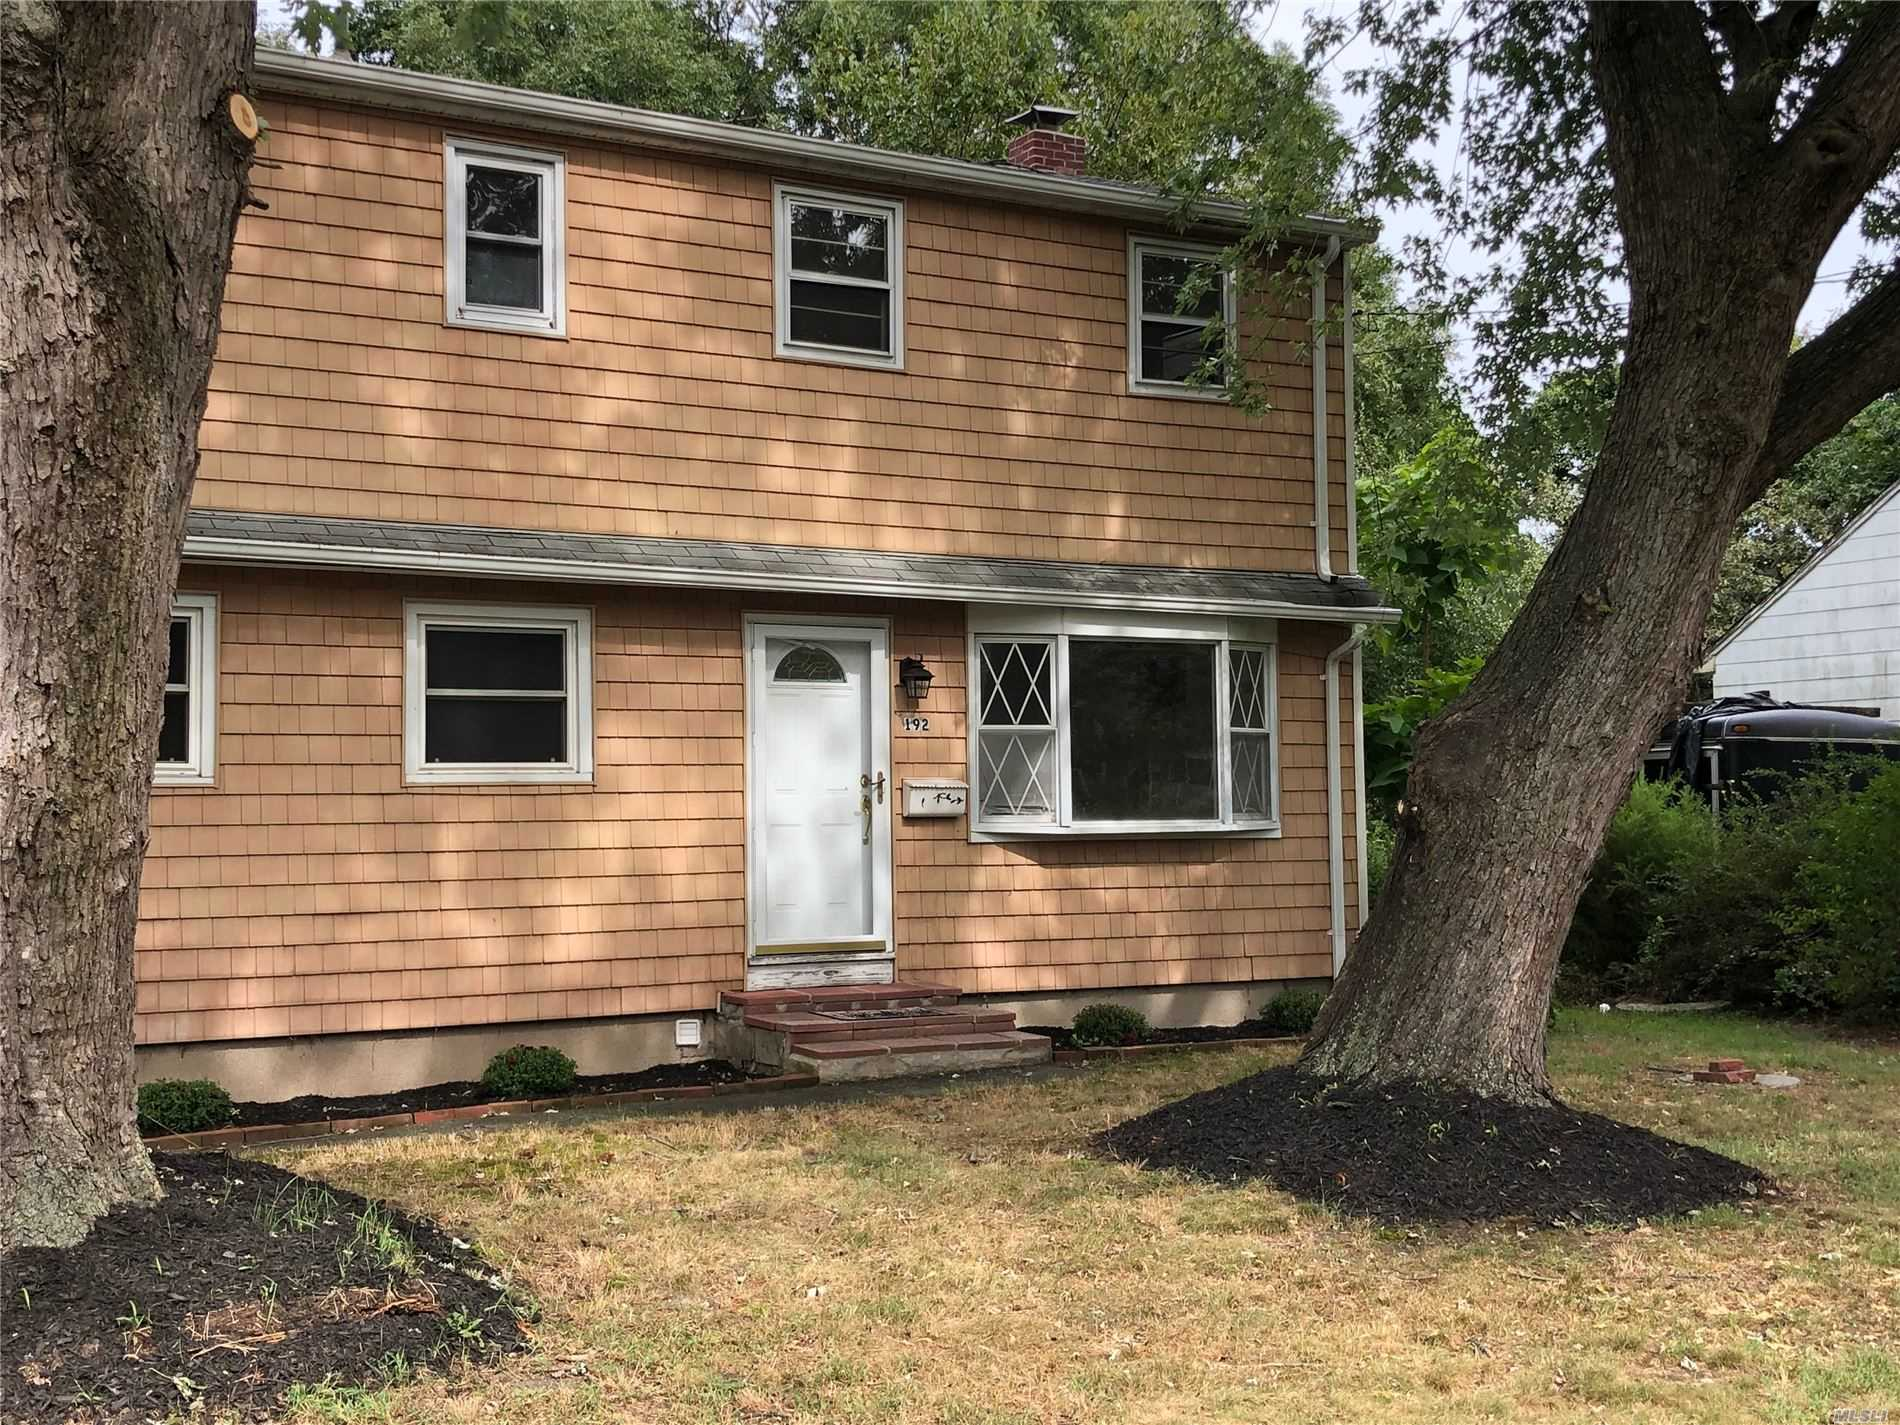 Photo of home for sale at 192 Mark Tree Rd, Centereach NY